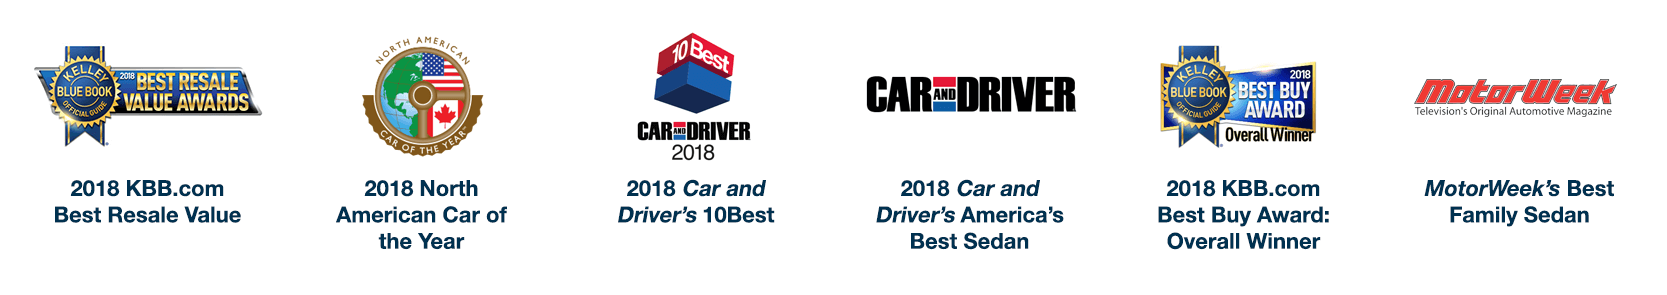 2018 Honda Accord Awards and Accolades